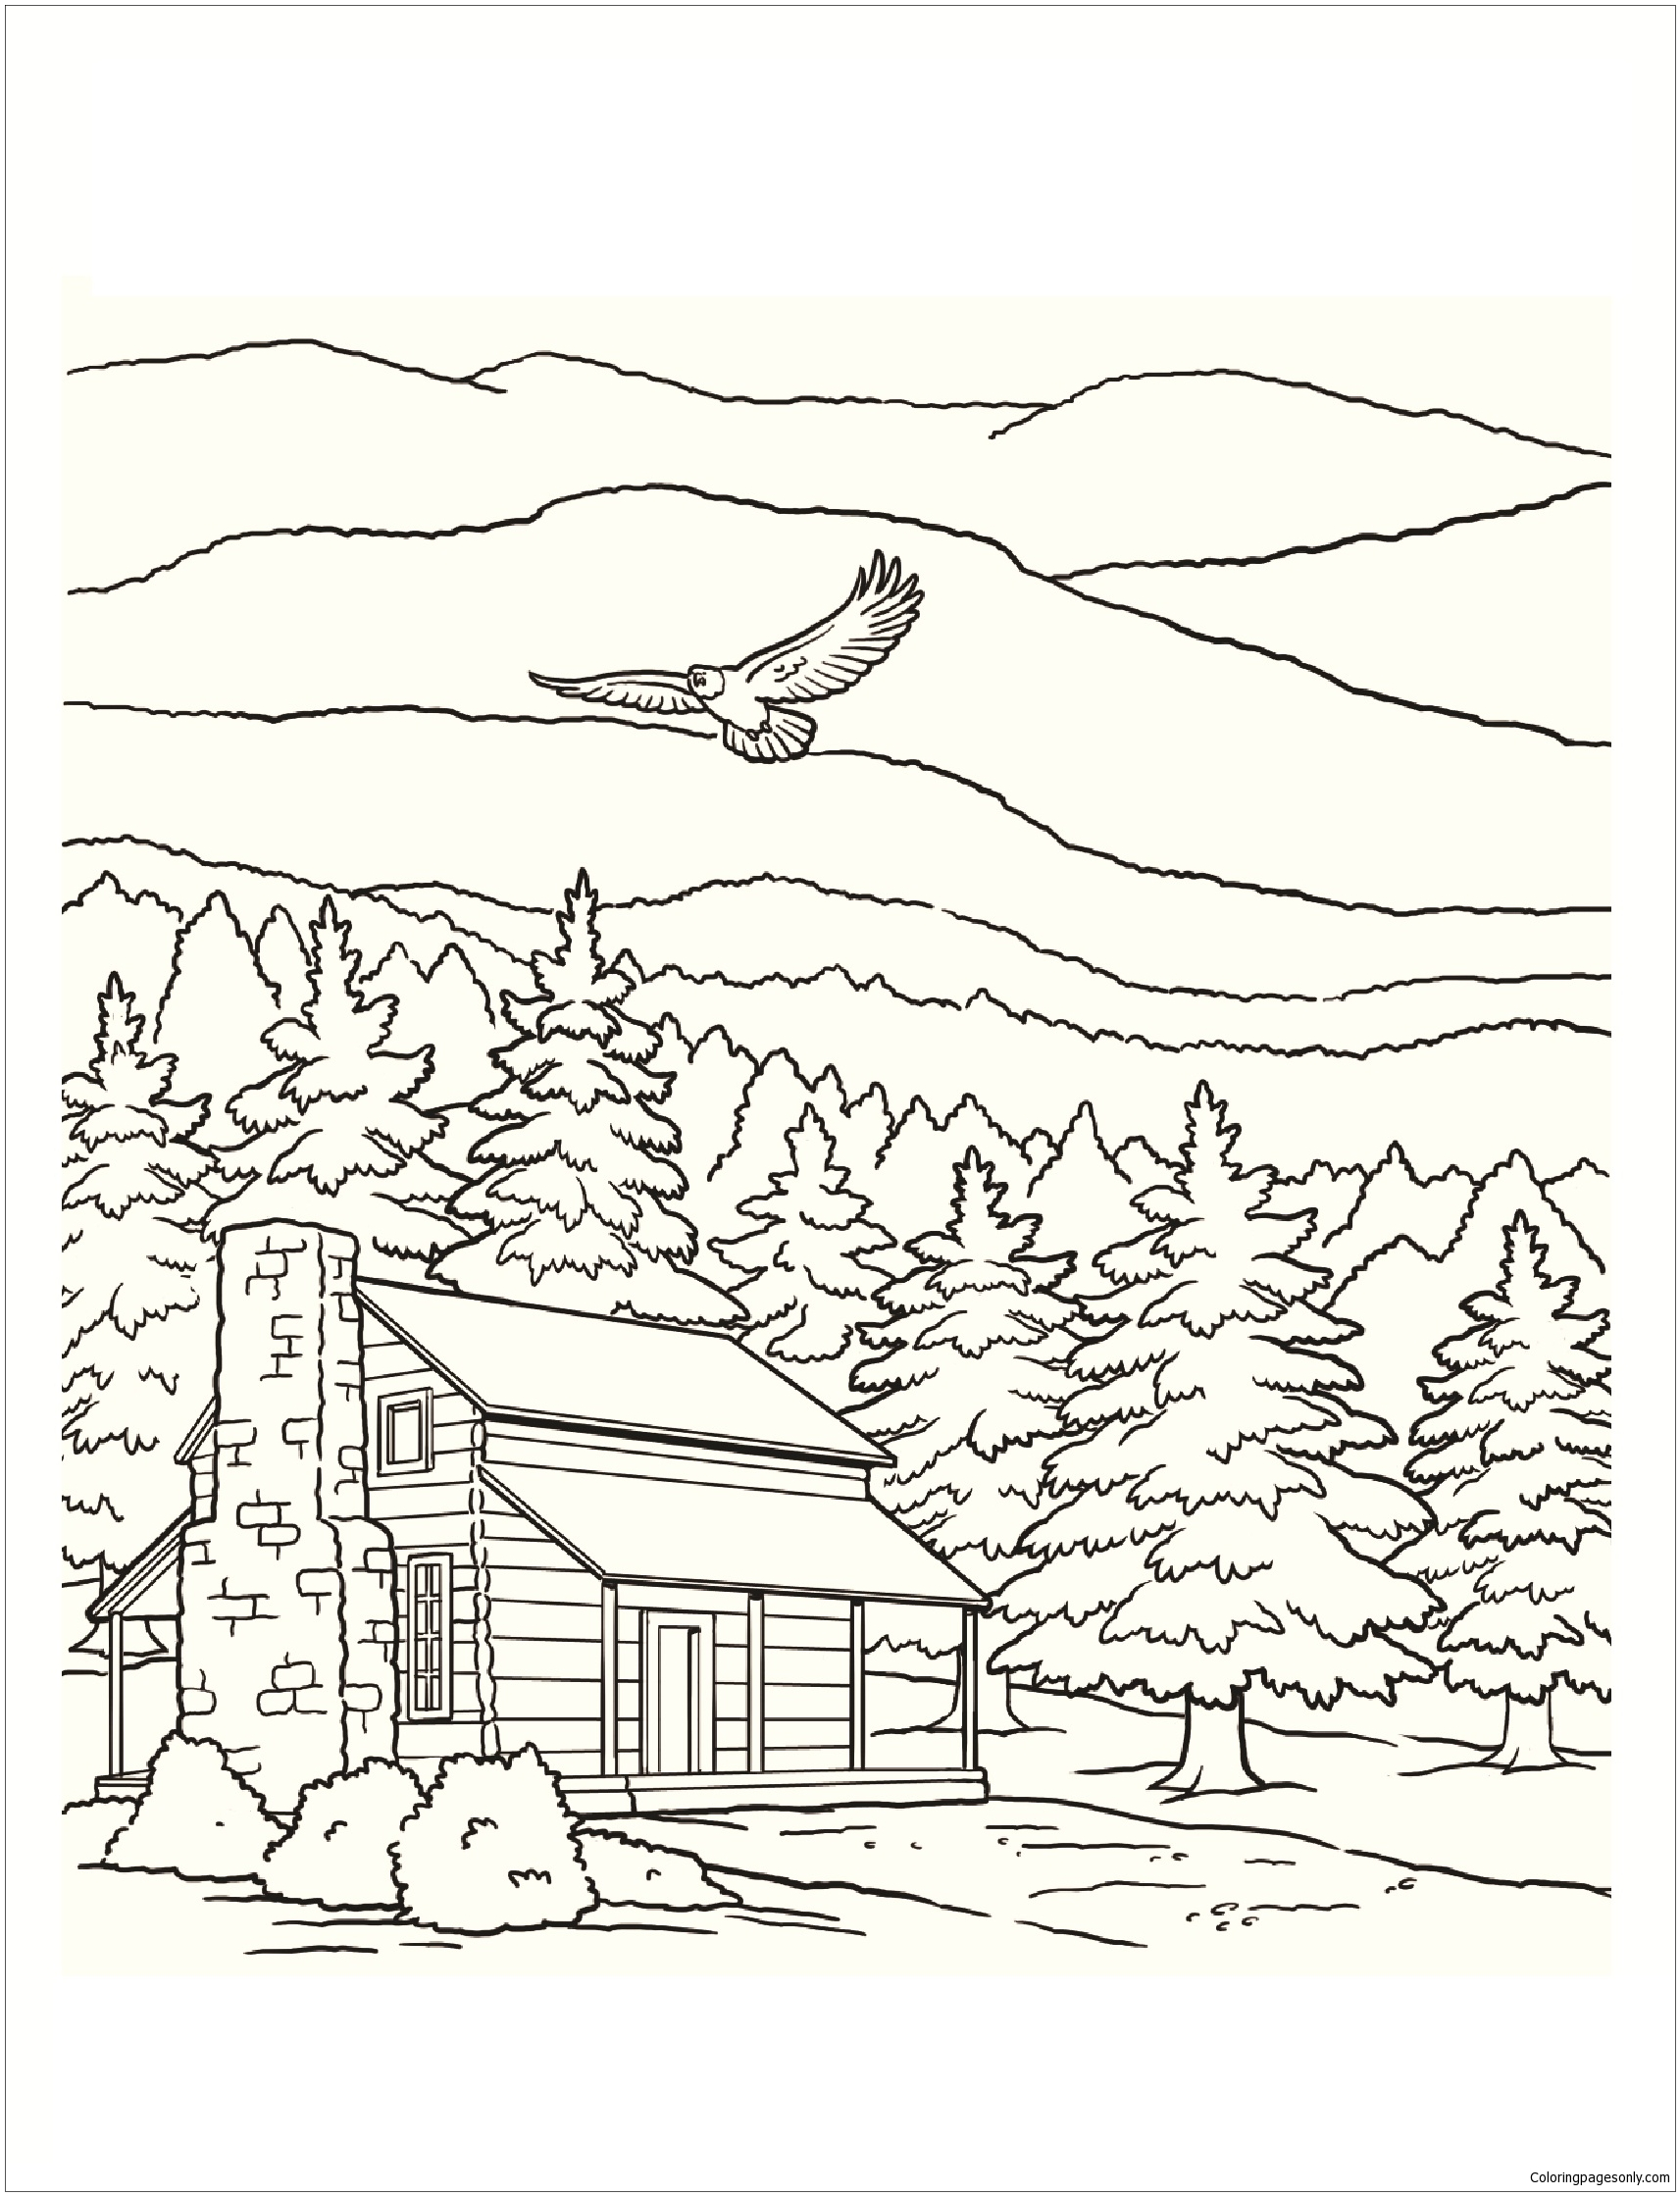 Smoky Mountains National Park Coloring Page Free